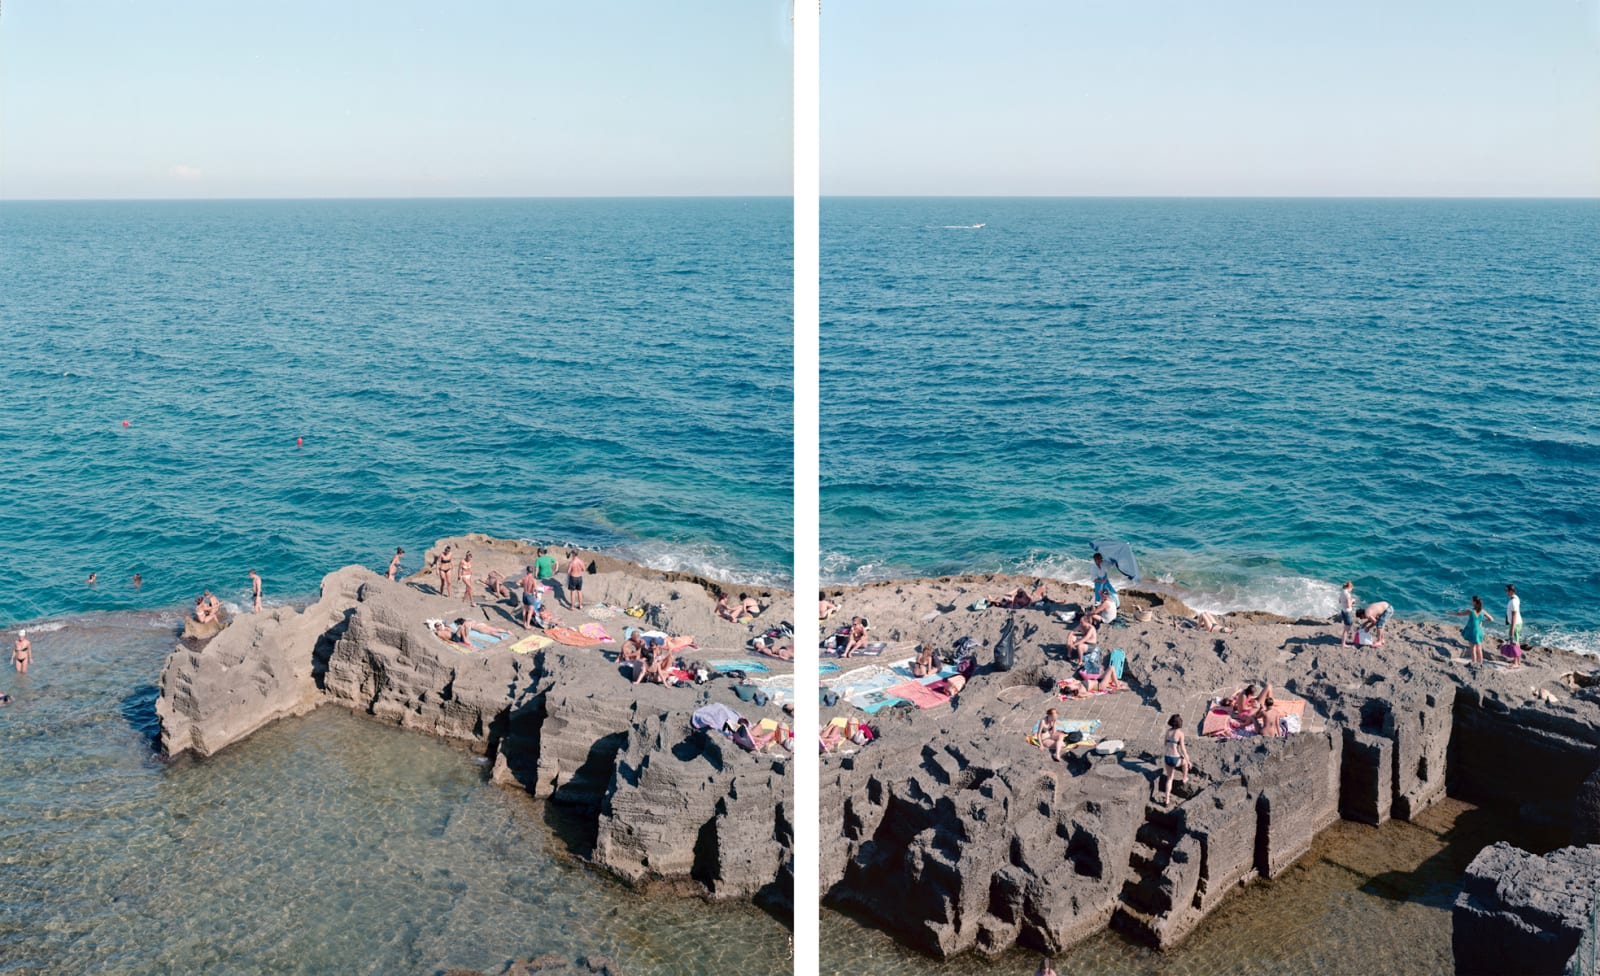 Diptych of people sunbathing on cliffs at Santa Cesarea Terme, southern Italy, with blue ocean in background, by Massimo Vitali